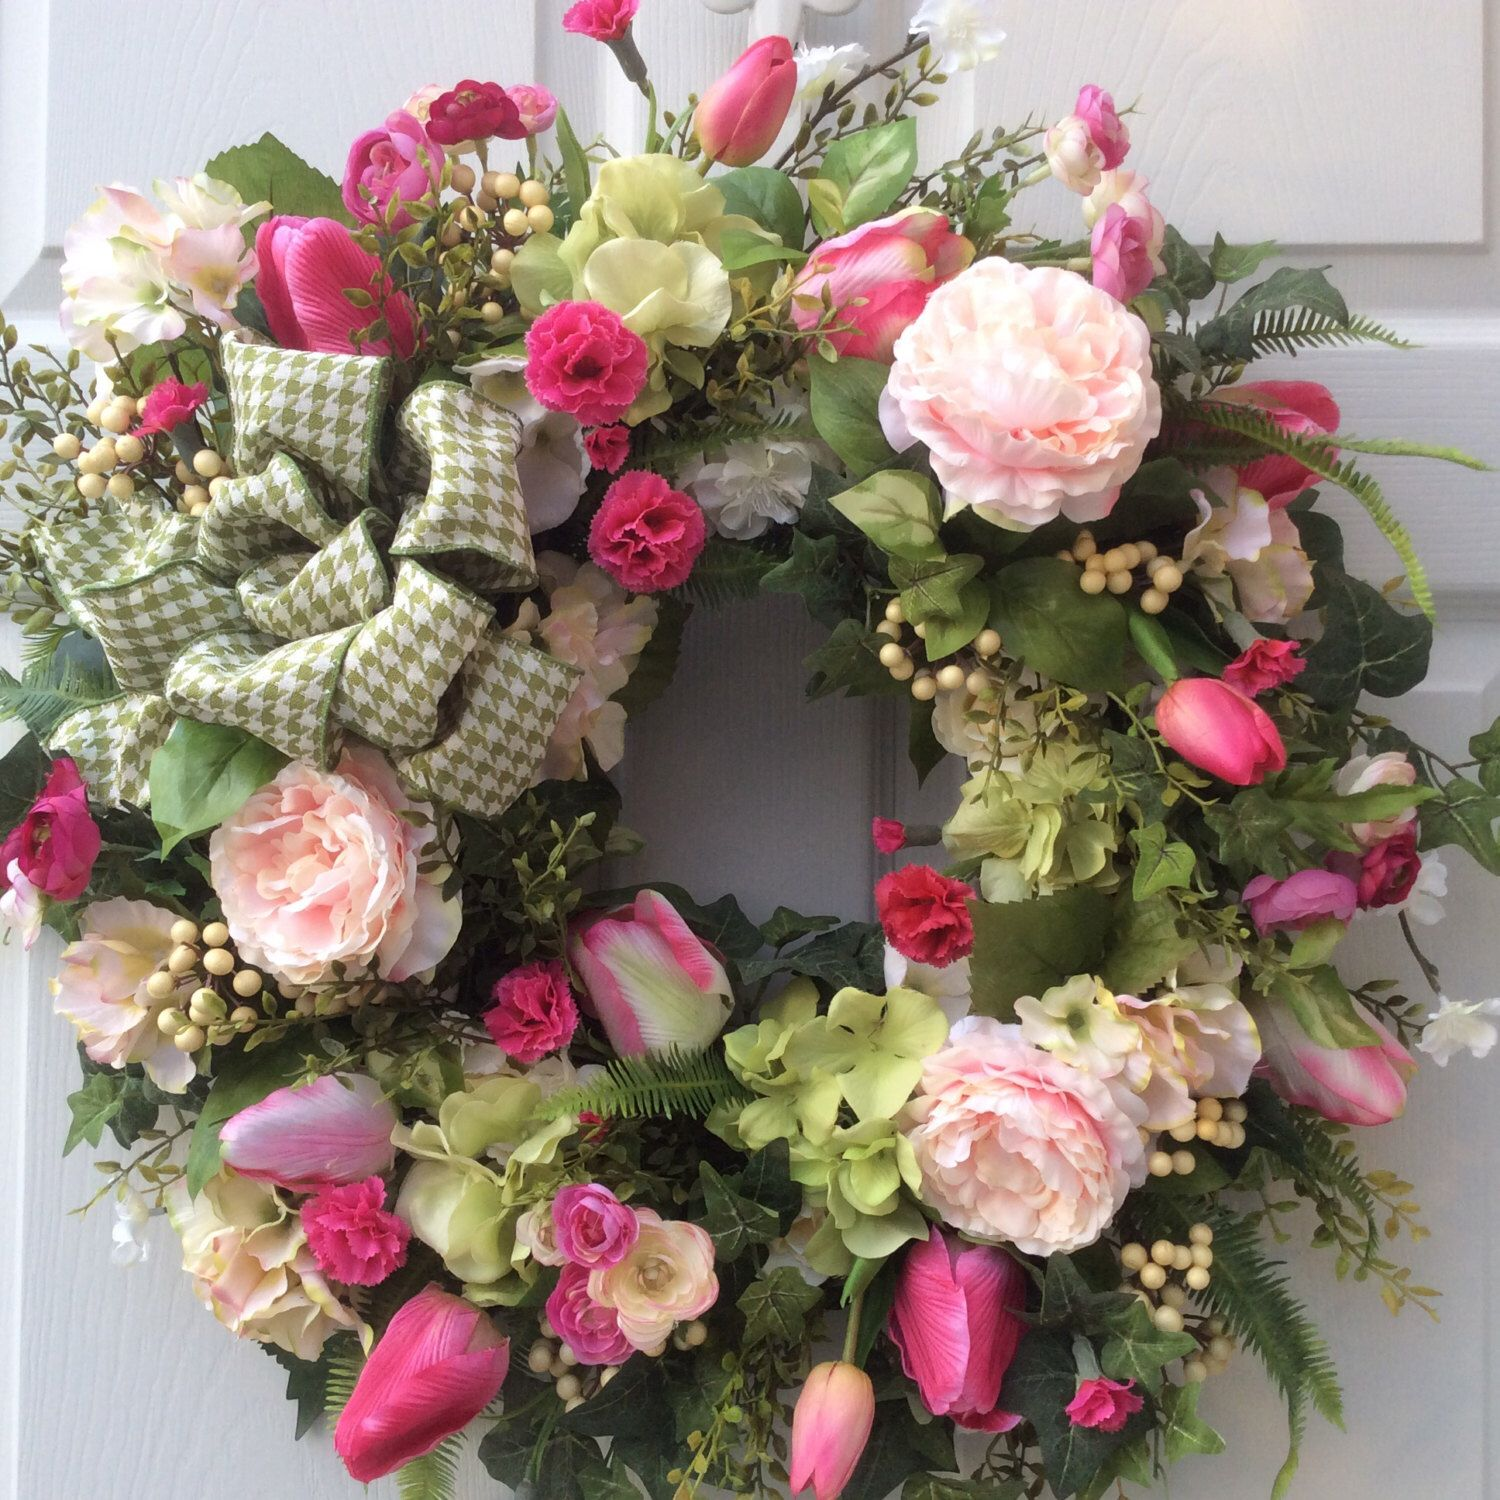 Spring Wreaths Valentine Wreath Hydrangea Wreath Front Door Decor Seasonal  Wreath